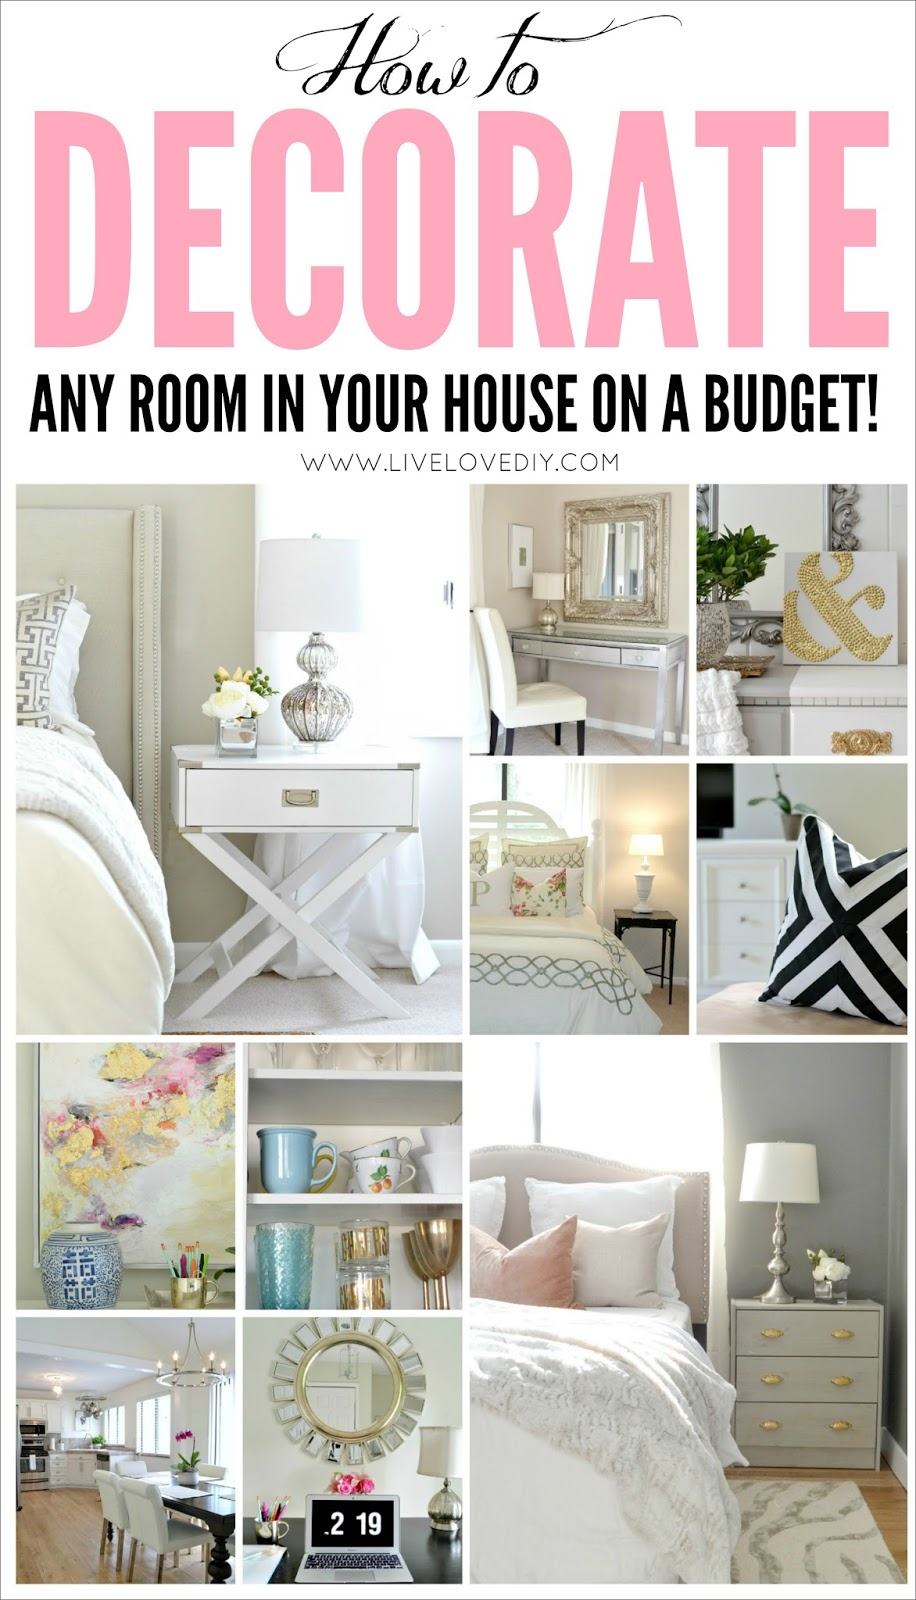 Charming Livelovediy How To Decorate On A Budget Our House Tour